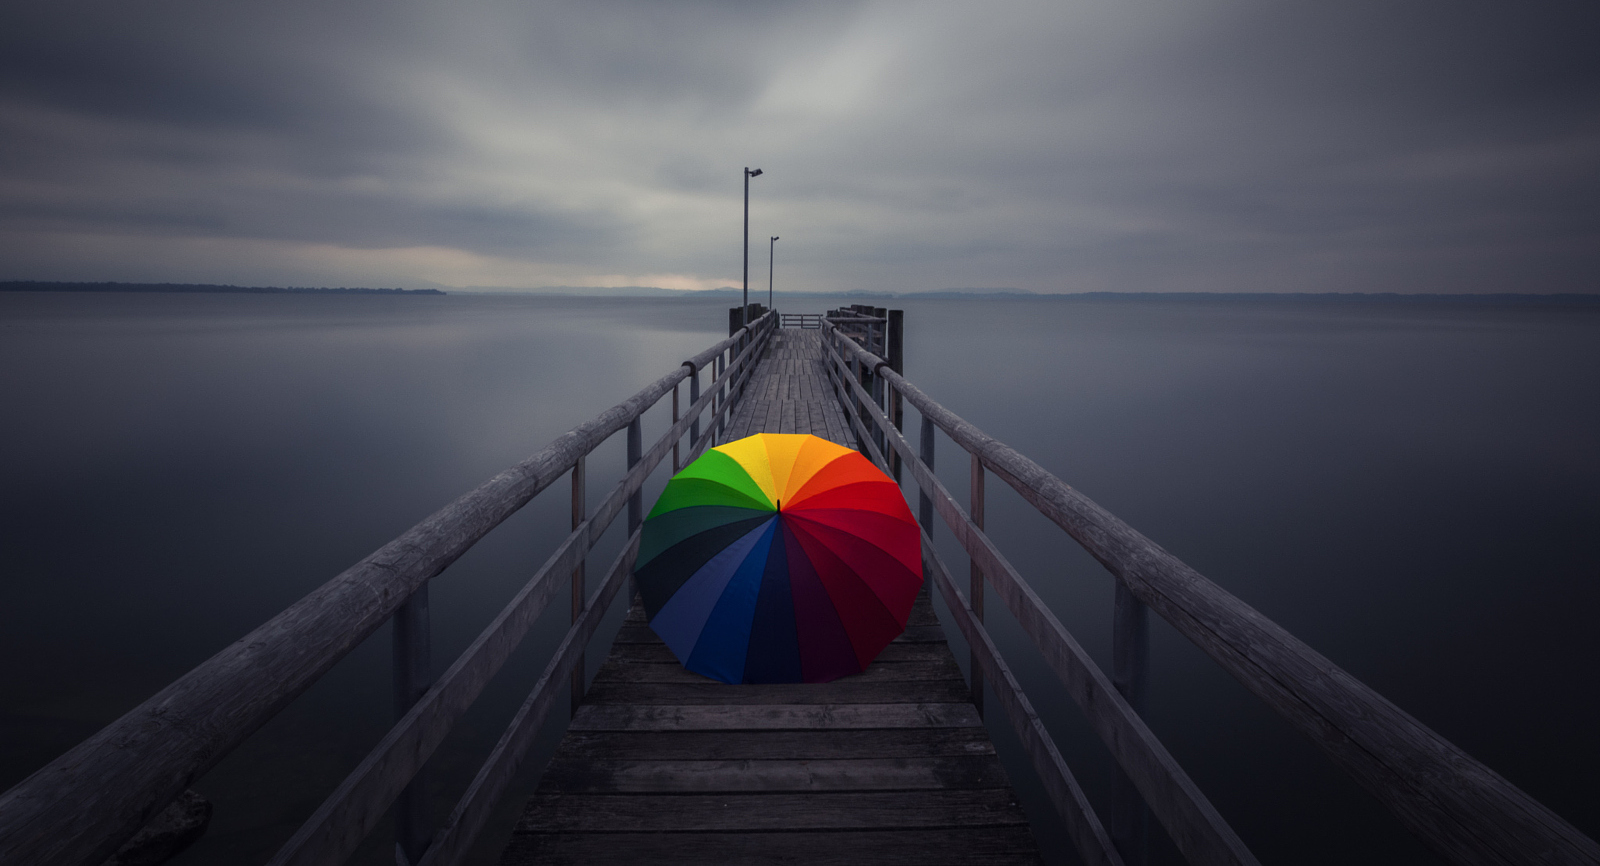 21 Times a Rainbow Umbrella Made a Normal Photo Awesome